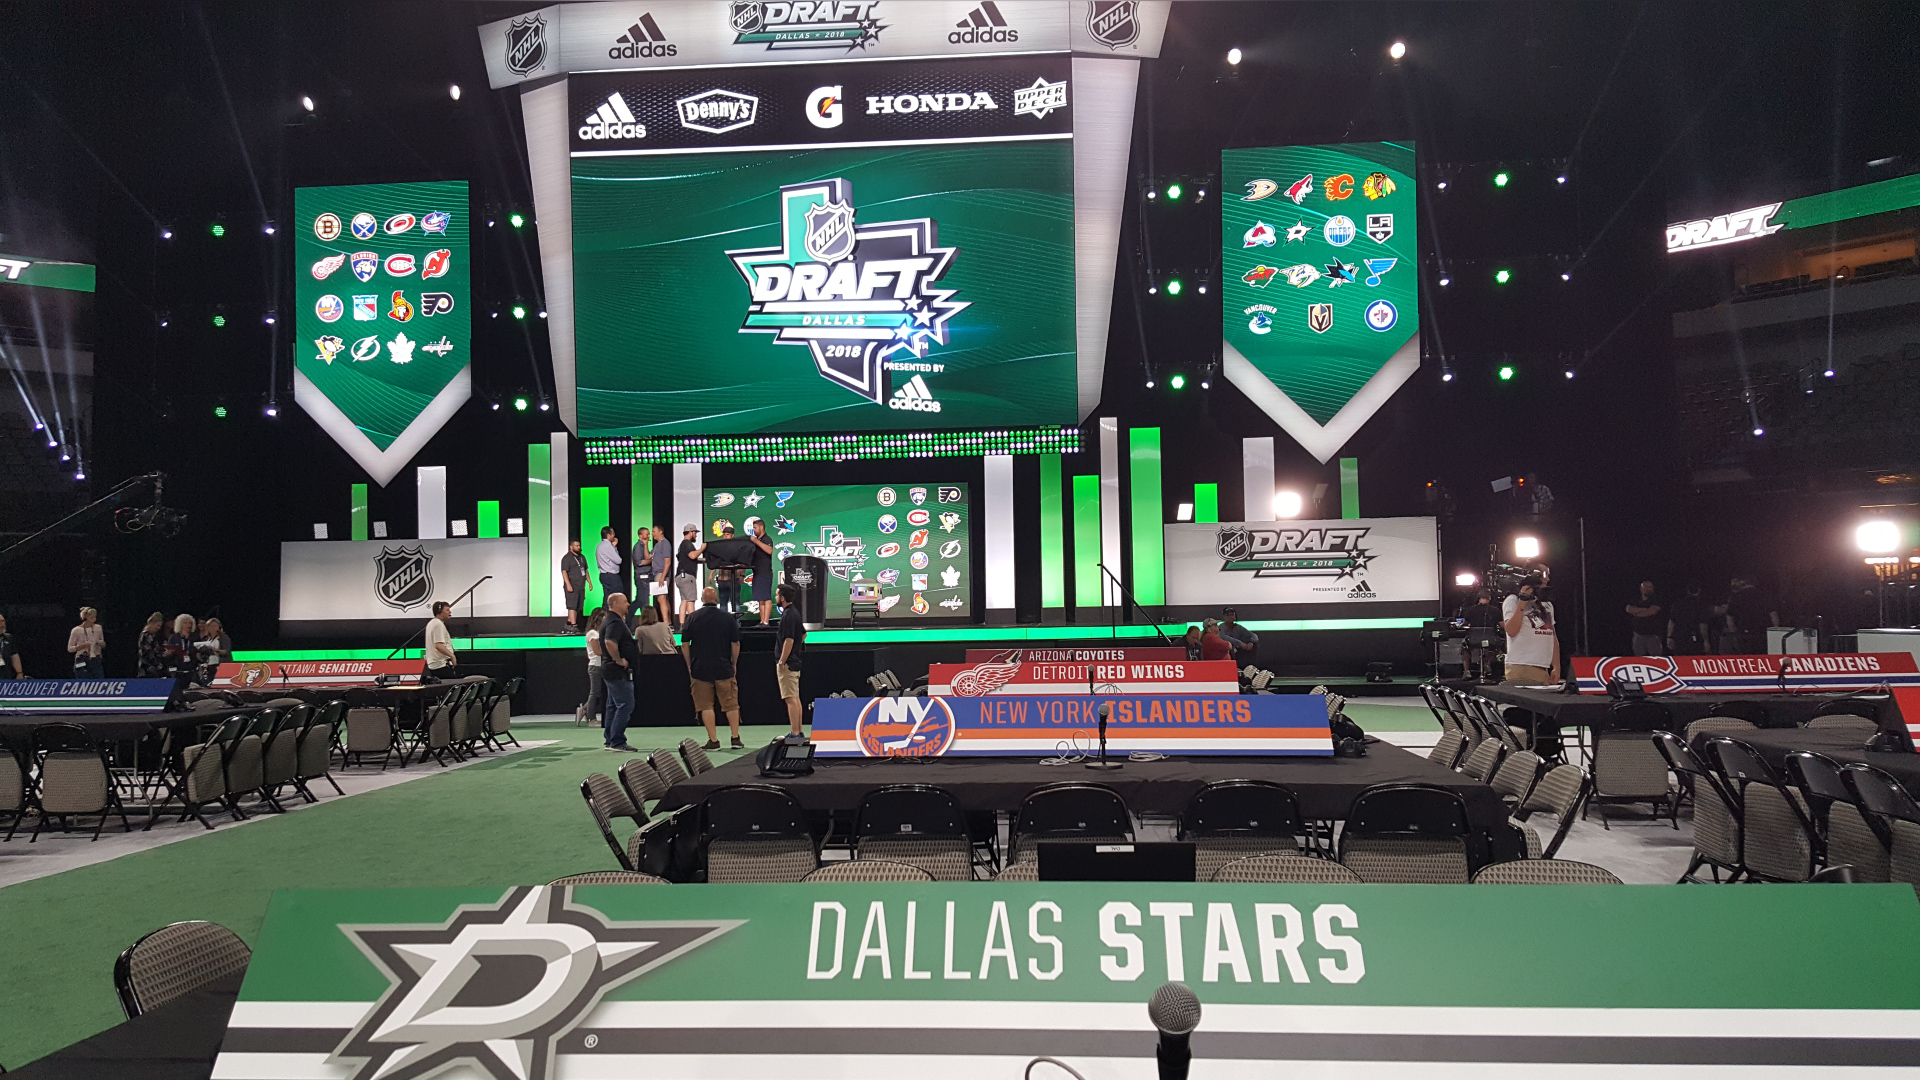 dallas nhl draft_1529889426406.jpg.jpg